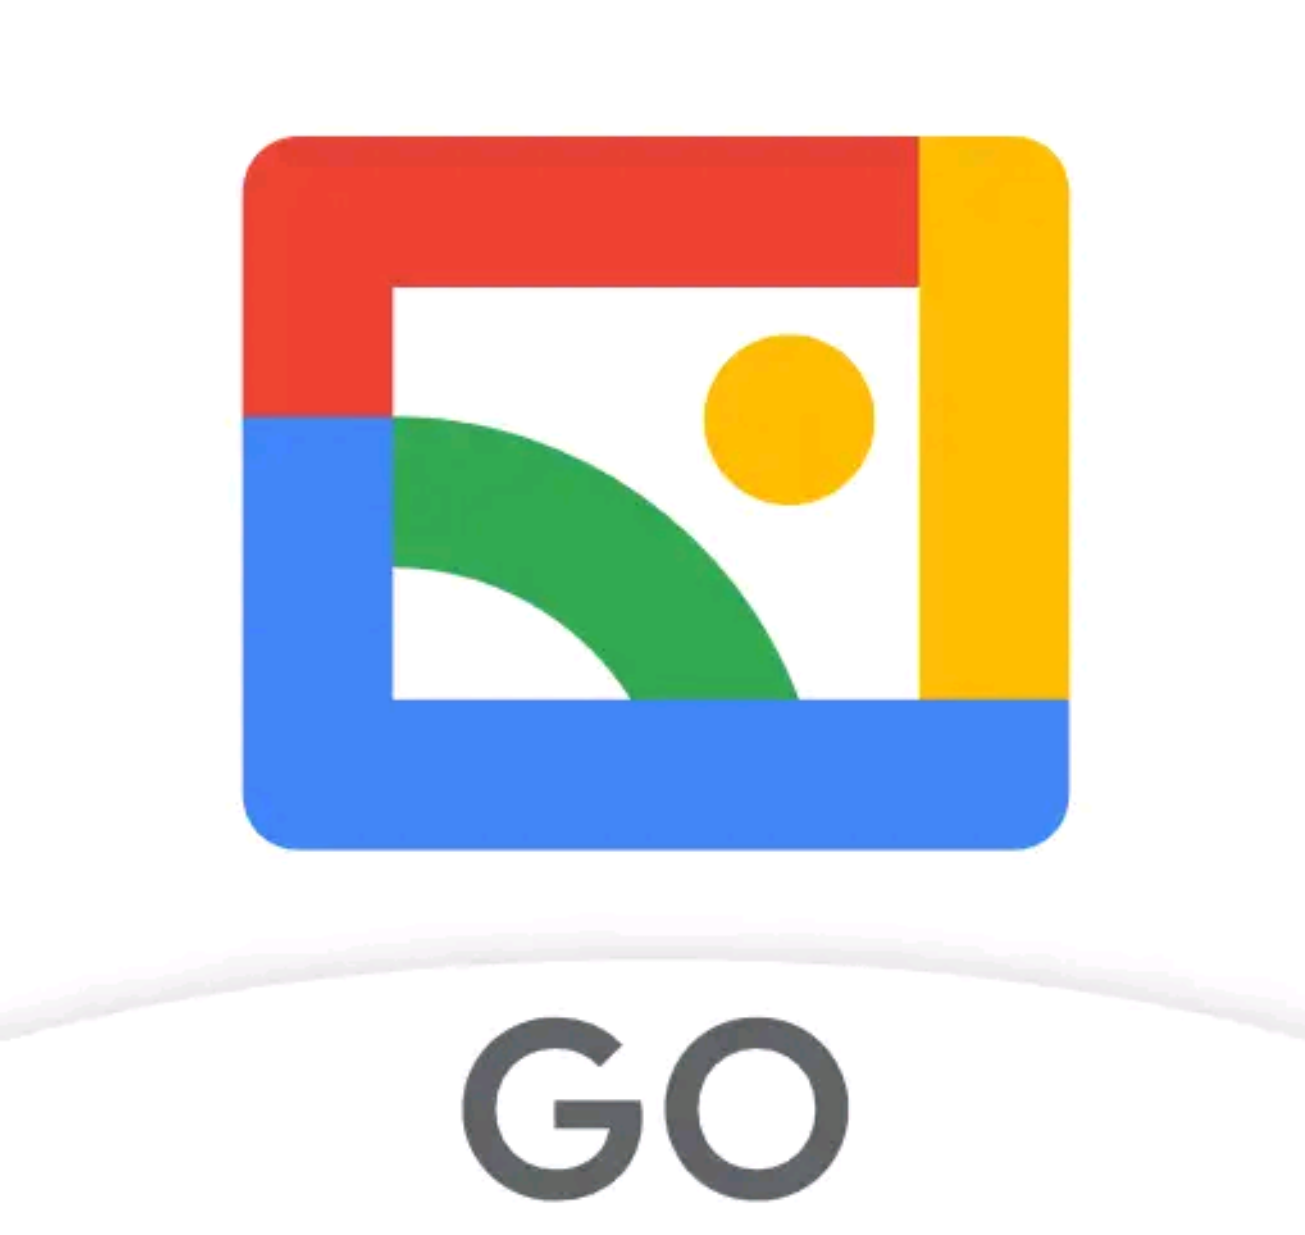 Gallery Go is a lite version of Google Photos 1